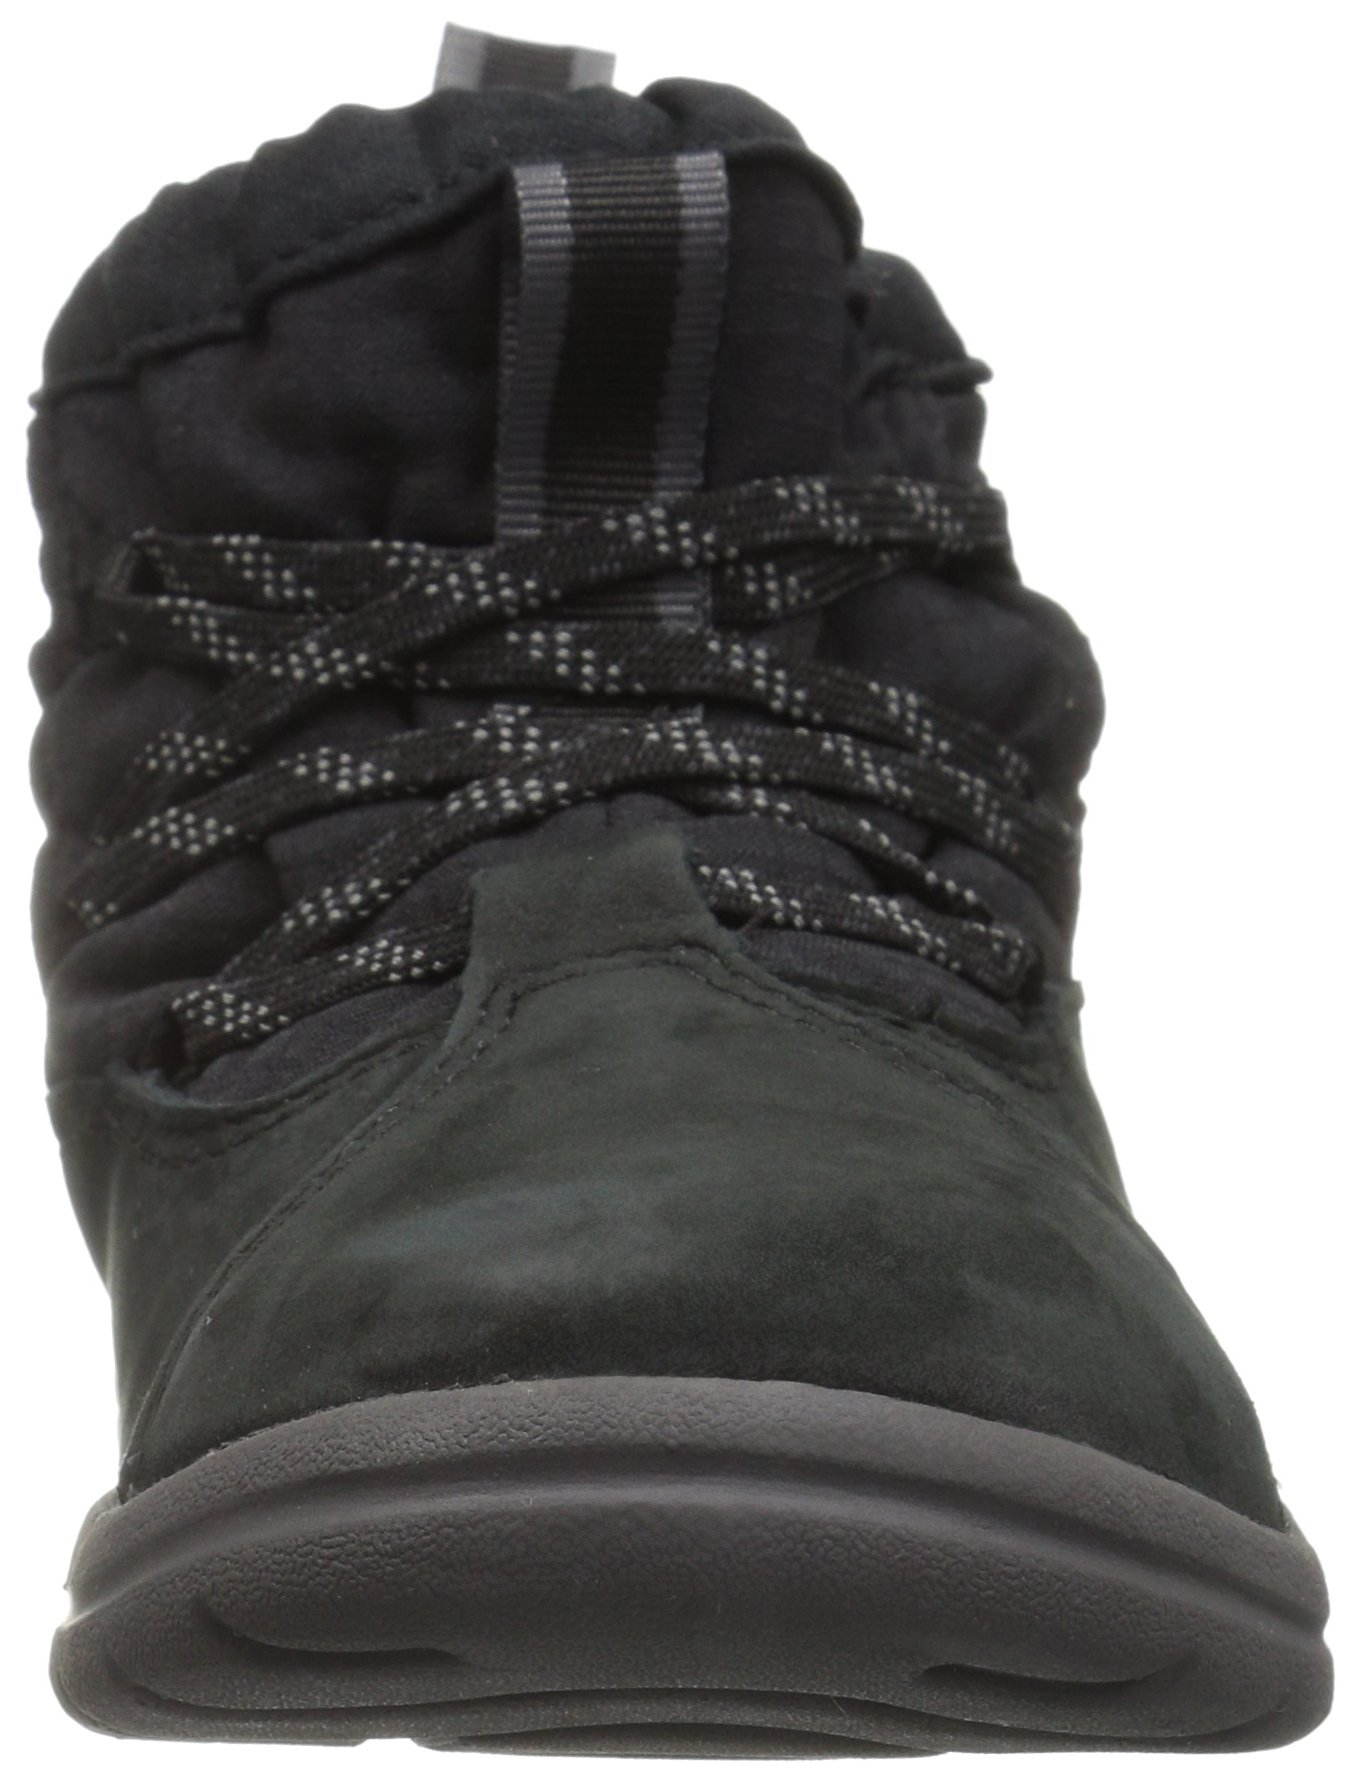 Timberland Unisex Toddle Tracks Warm Fabric Leather Bootie Snow Boot Black Nubuck 12 M US Little Kid by Timberland (Image #4)